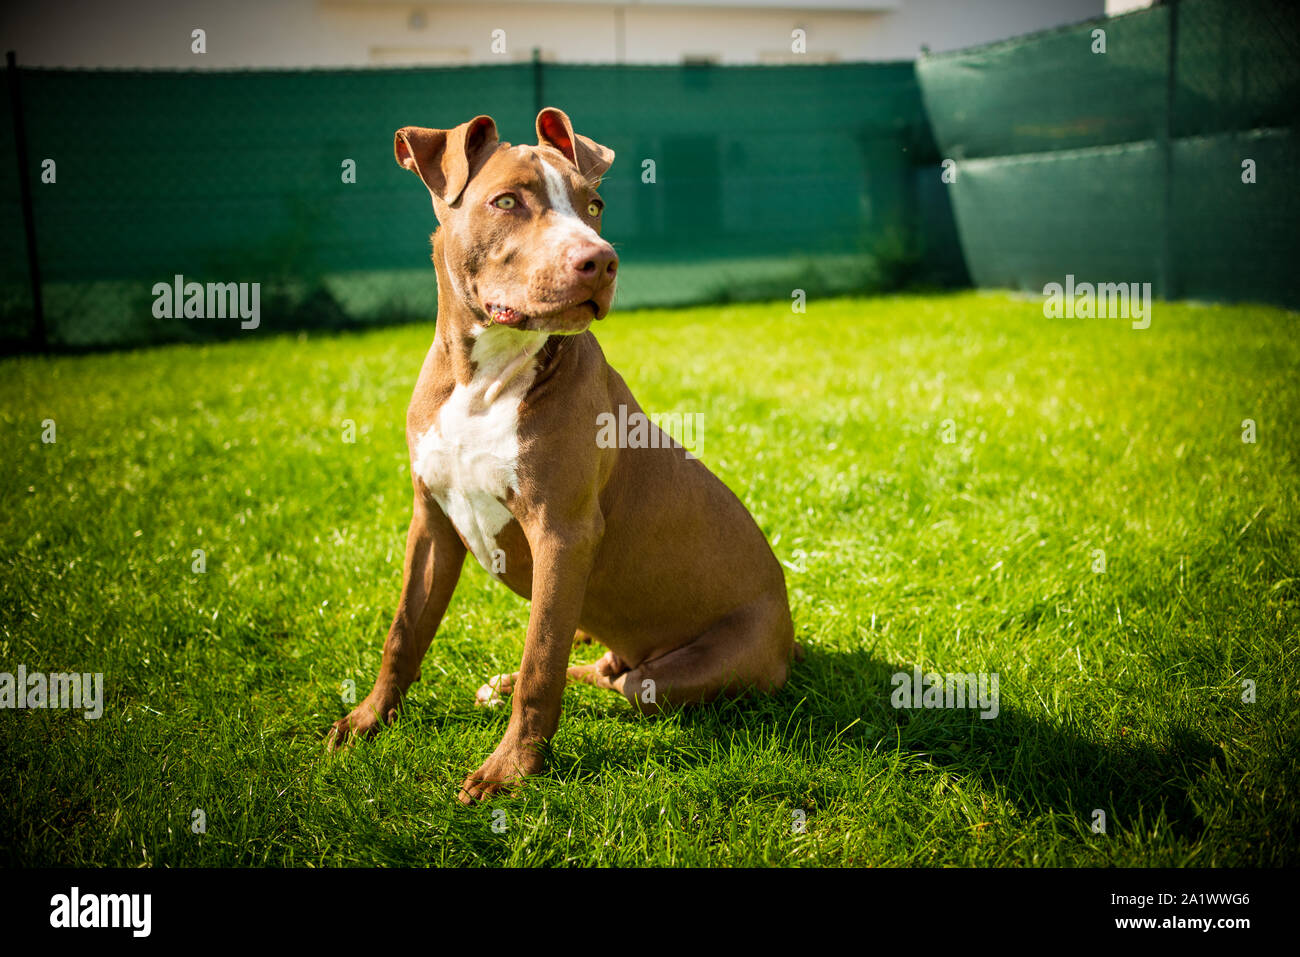 Young pitbull Staffordshire Bull Terrier in garden sits on grass with floppy ears background Stock Photo